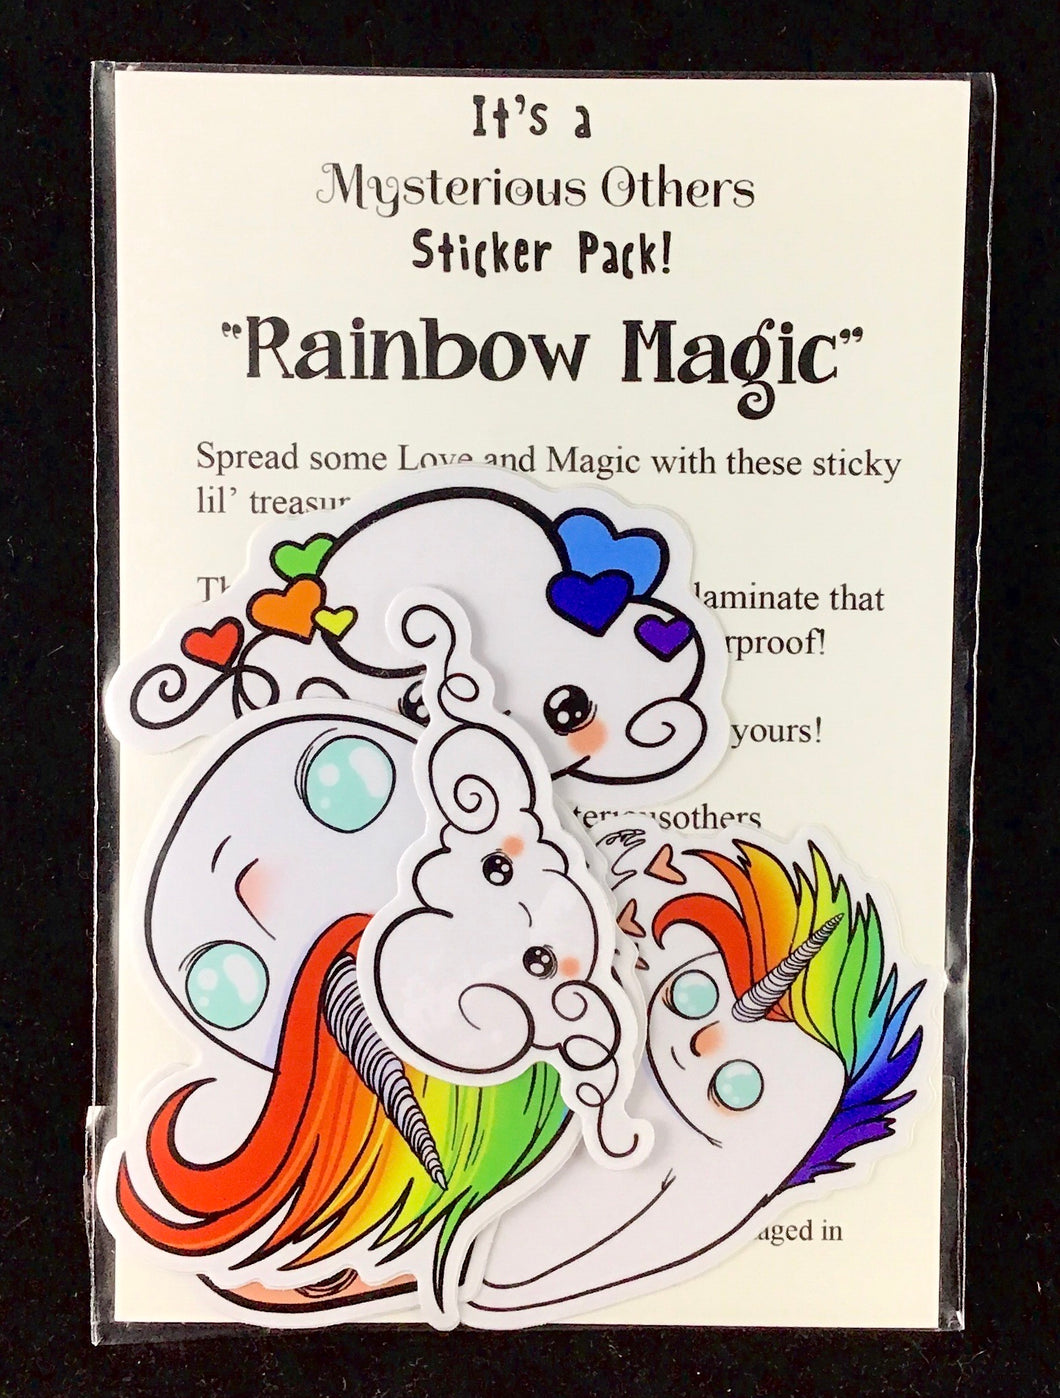 Sticker pack - Rainbow Magic